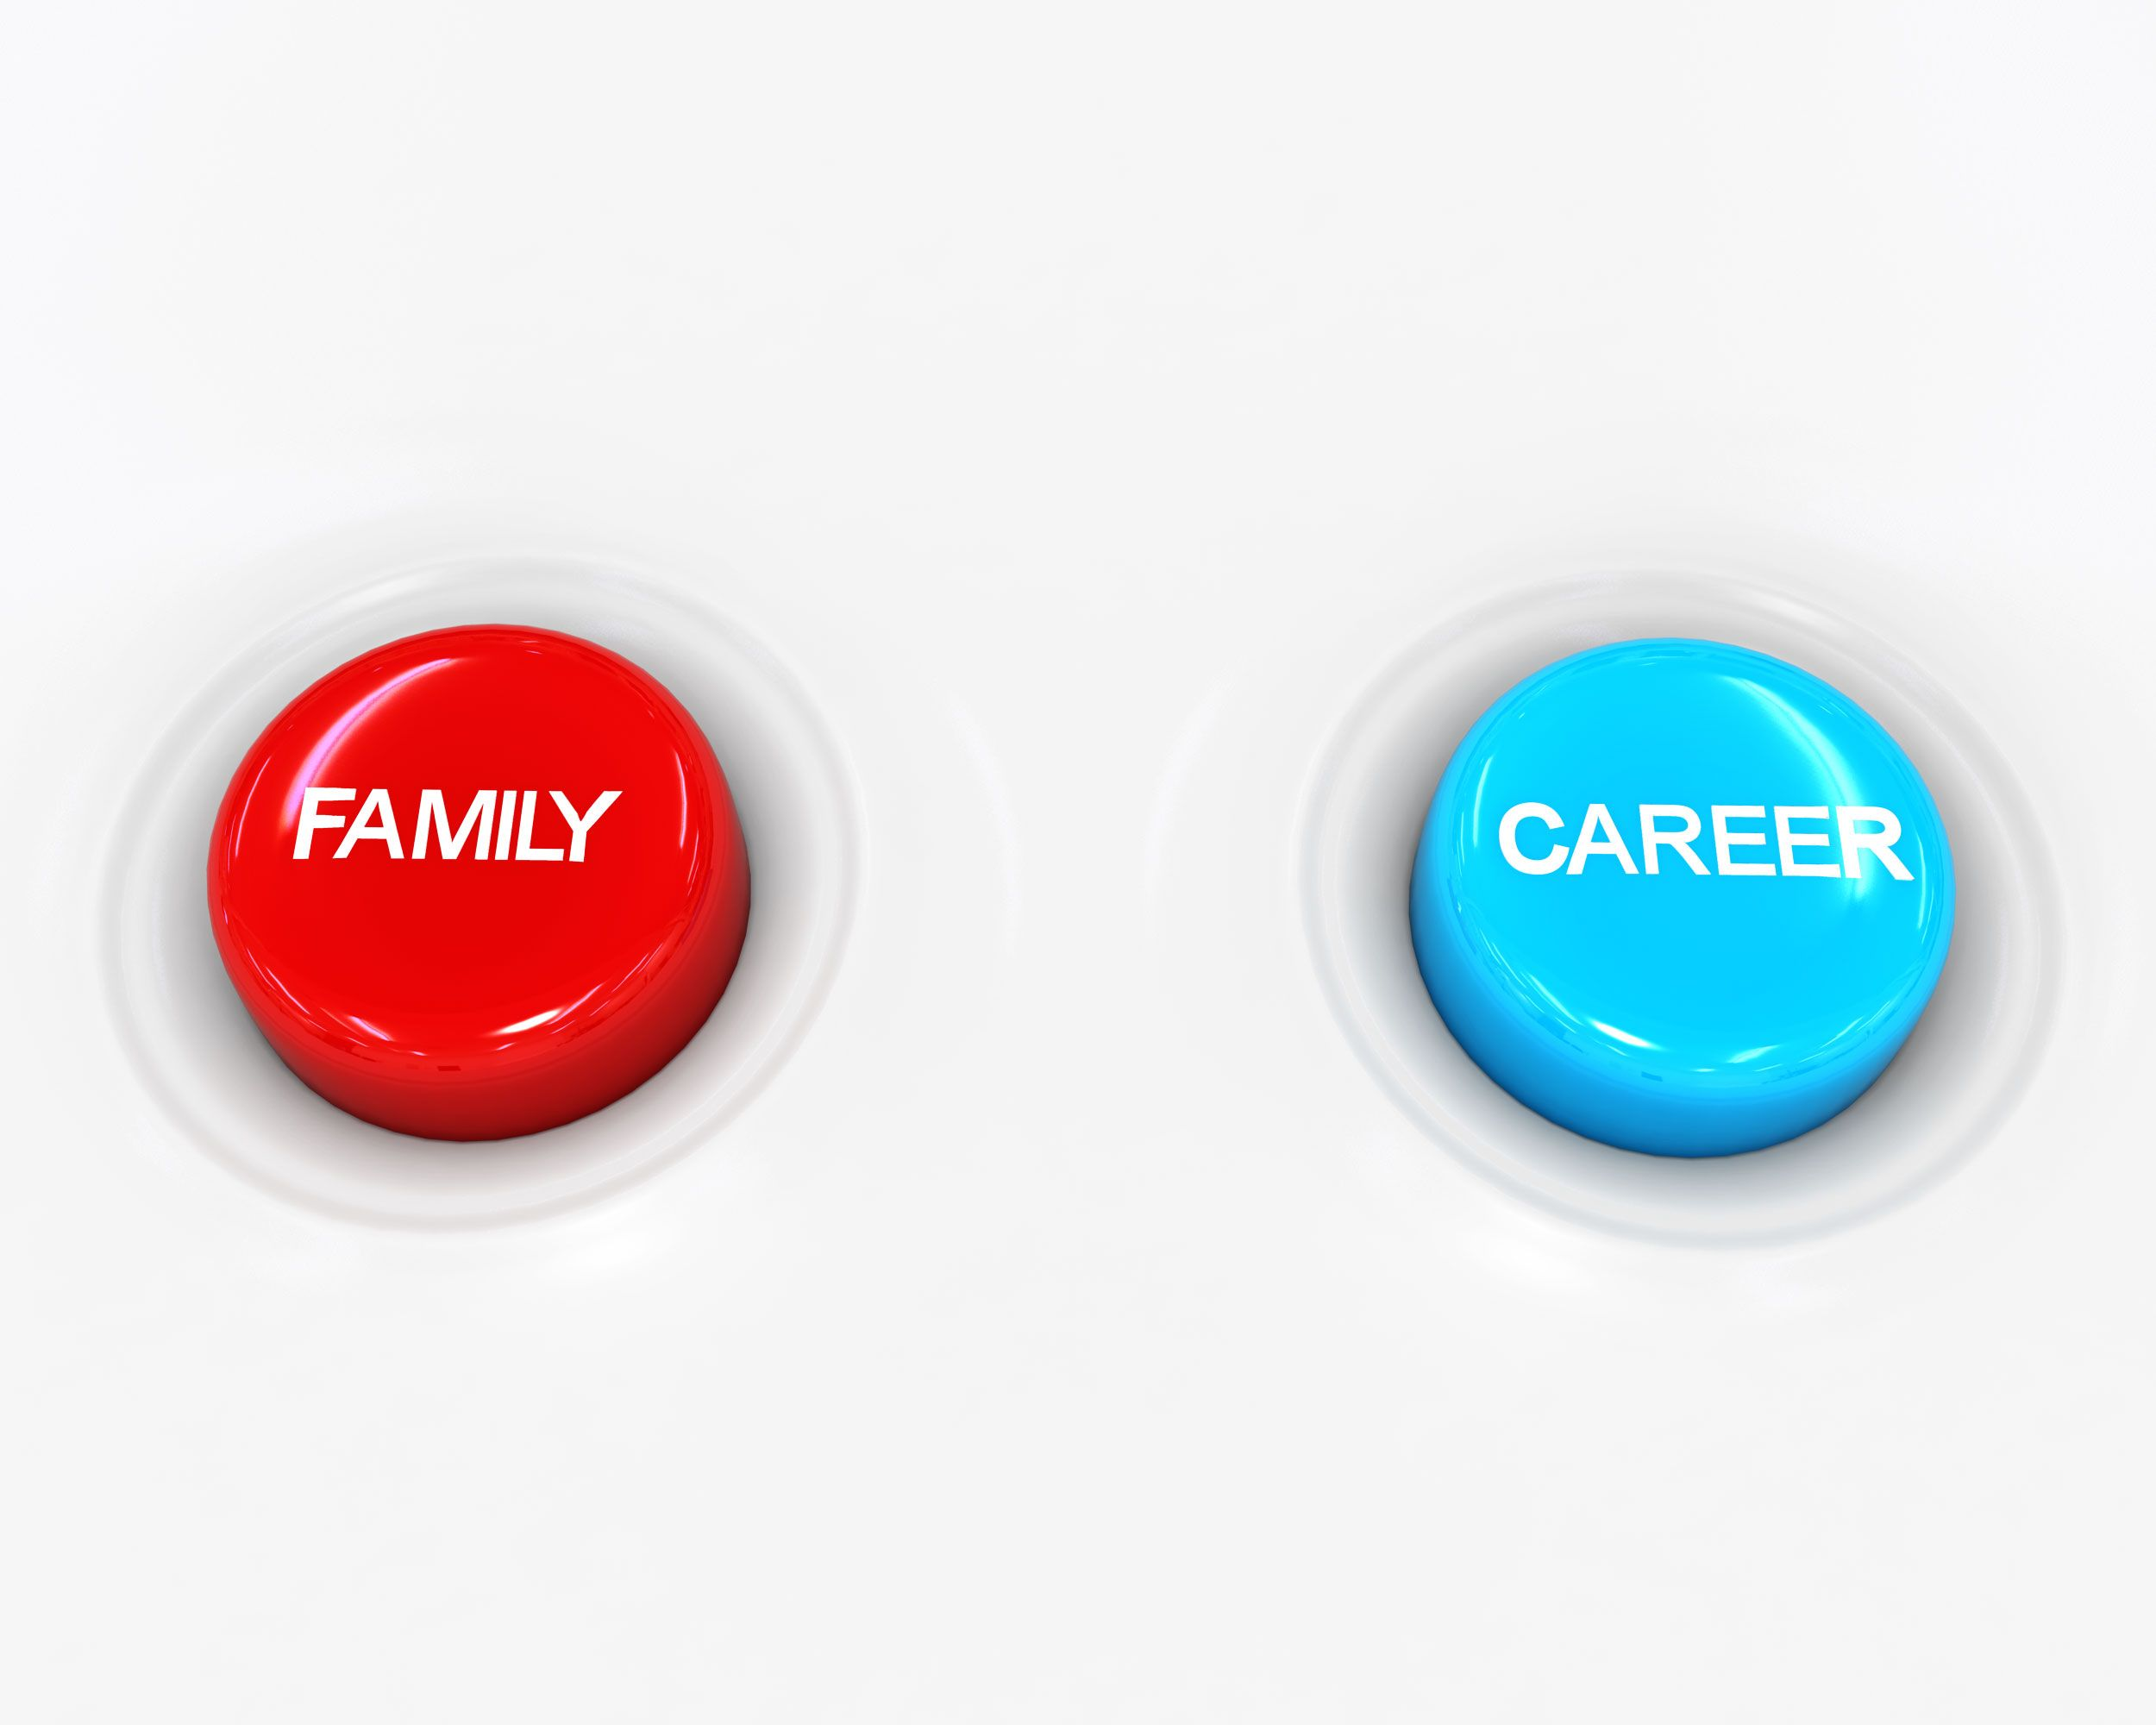 red_and_blue_buttons_on_white_background_with_family_and_career_text_stock_photo_Slide01